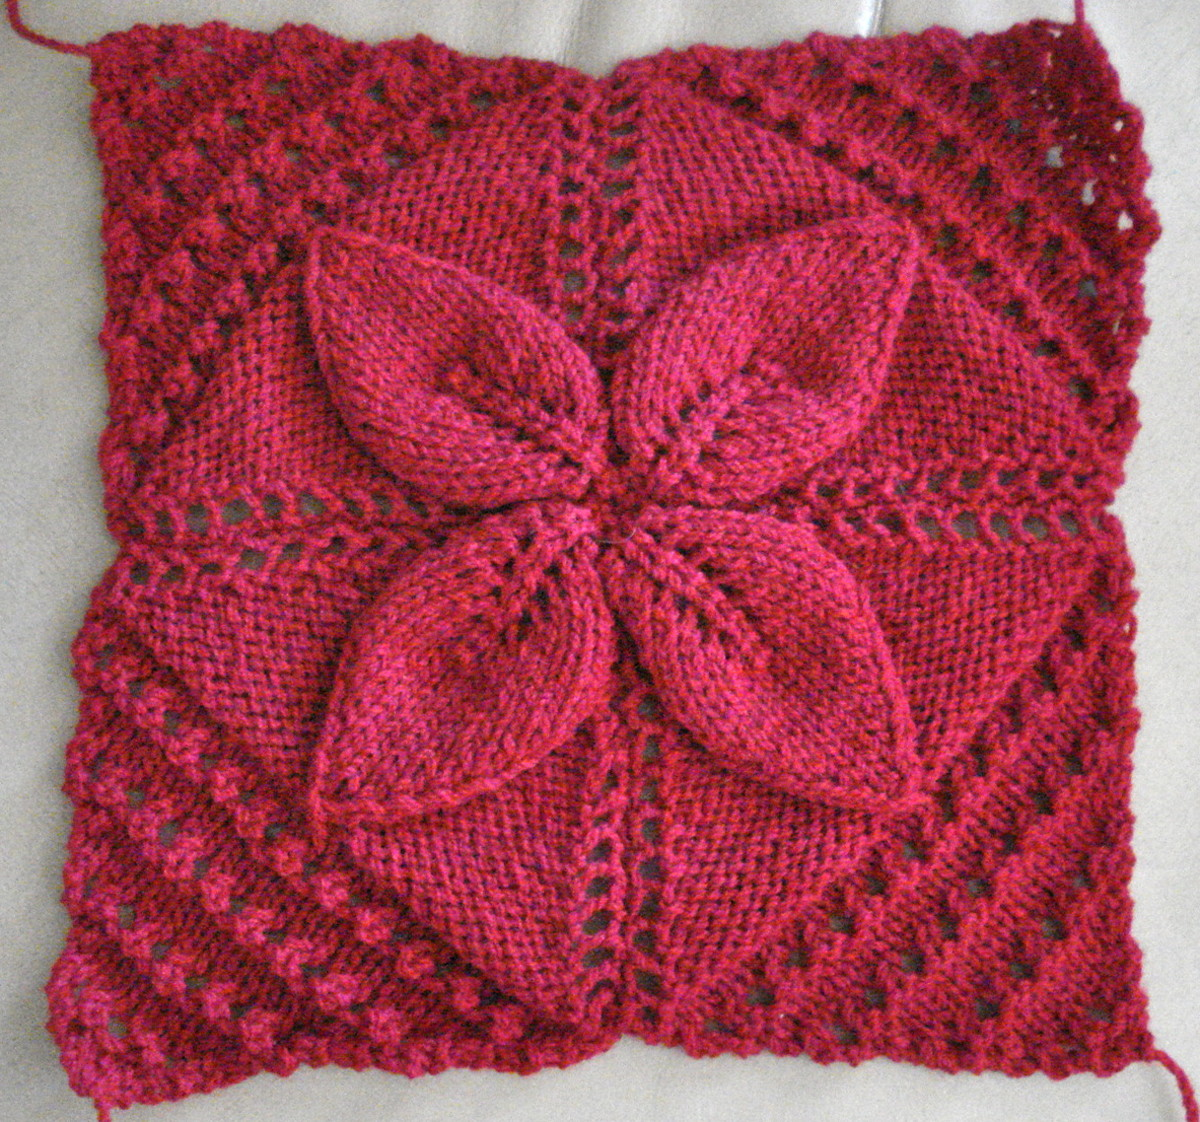 Knitted Square Patterns Free : Knitting Project: a Cosy Rug